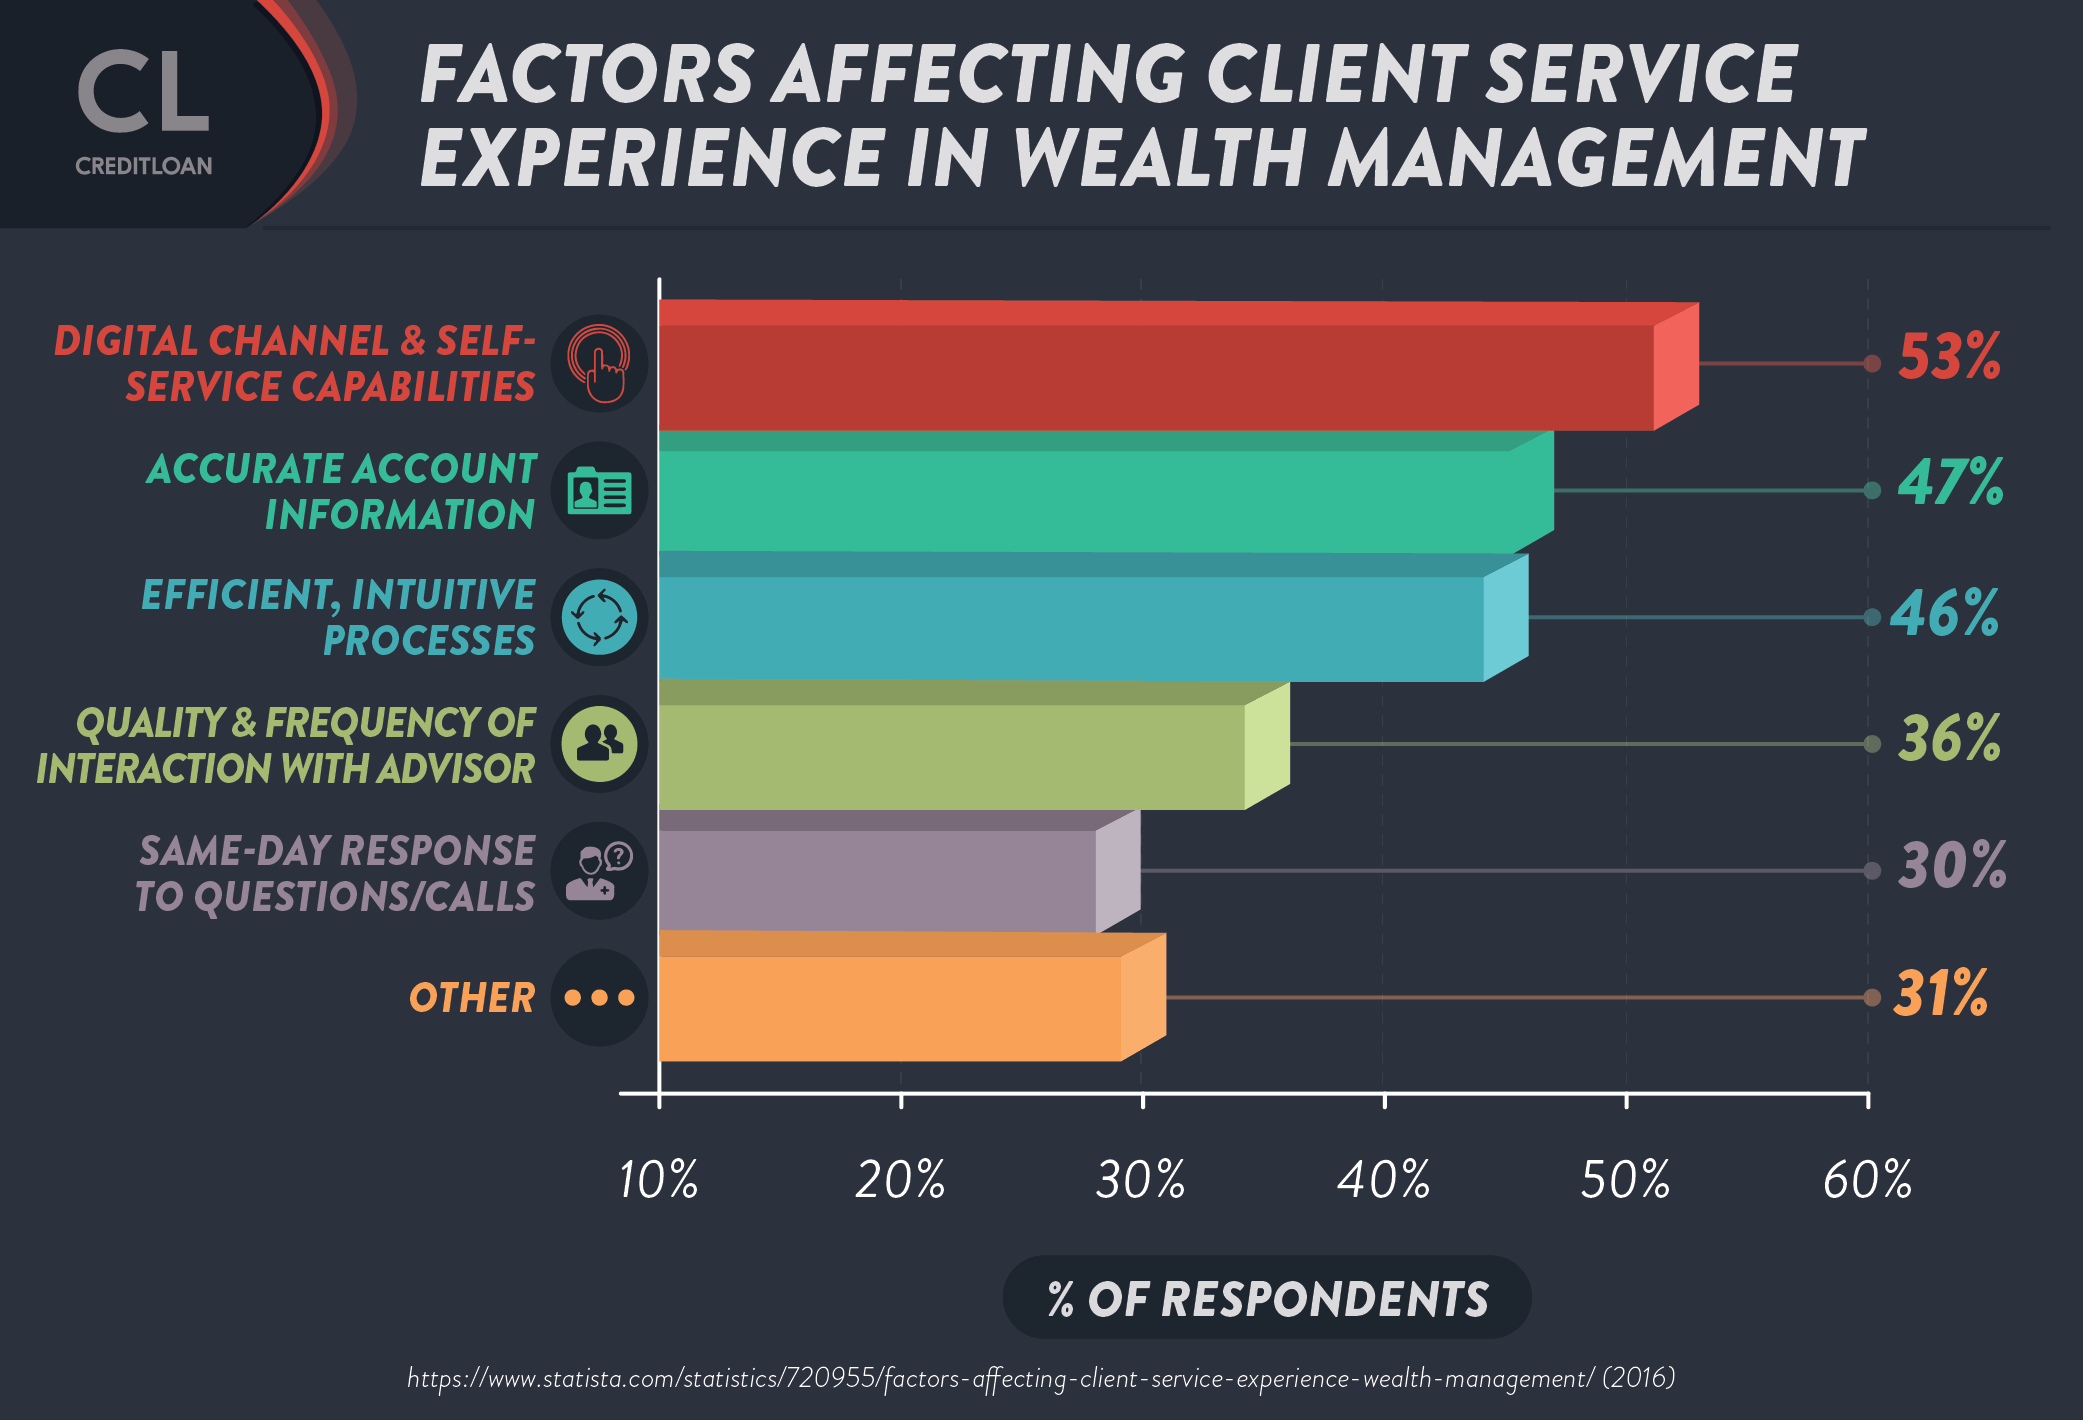 Factors affecting client service experience in wealth management